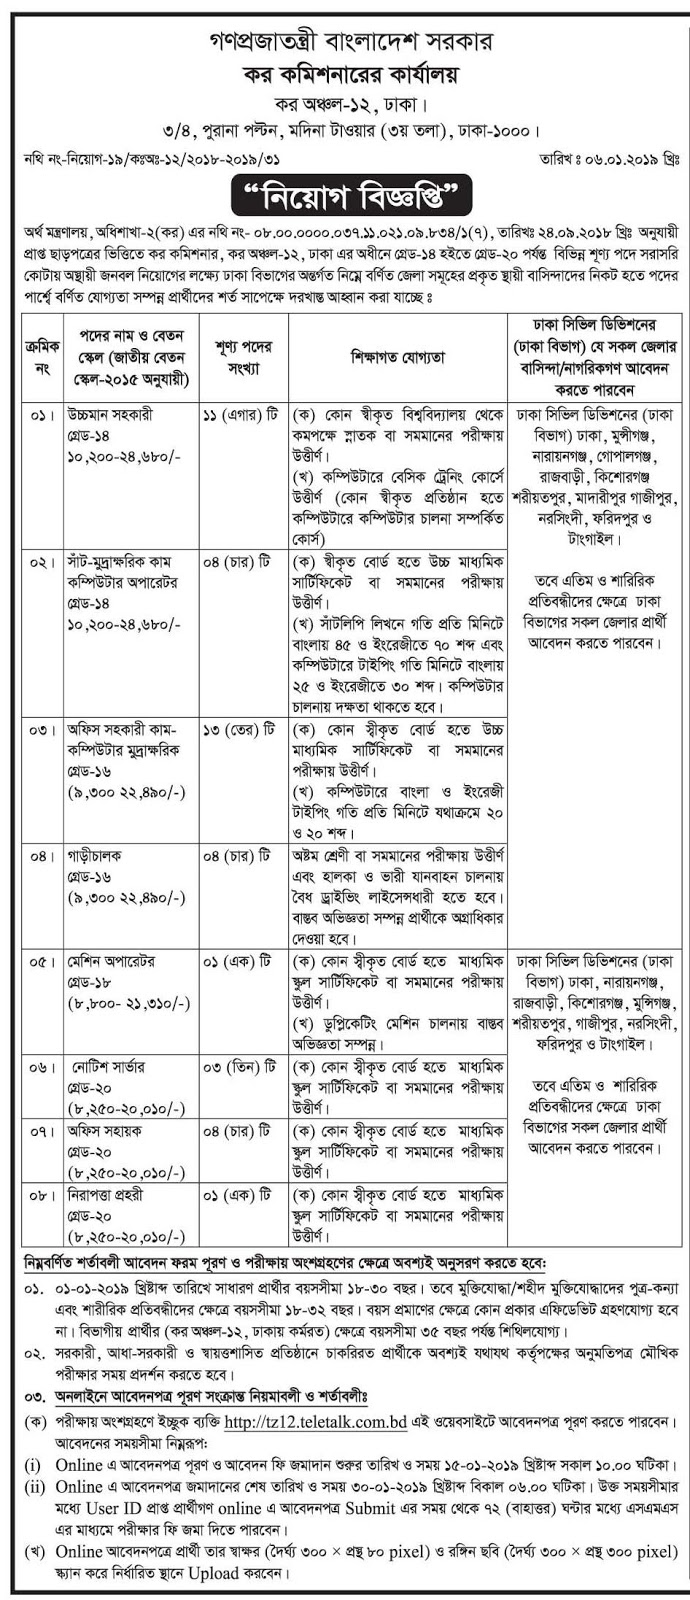 Taxes Zone-12, Dhaka Job Circular 2019